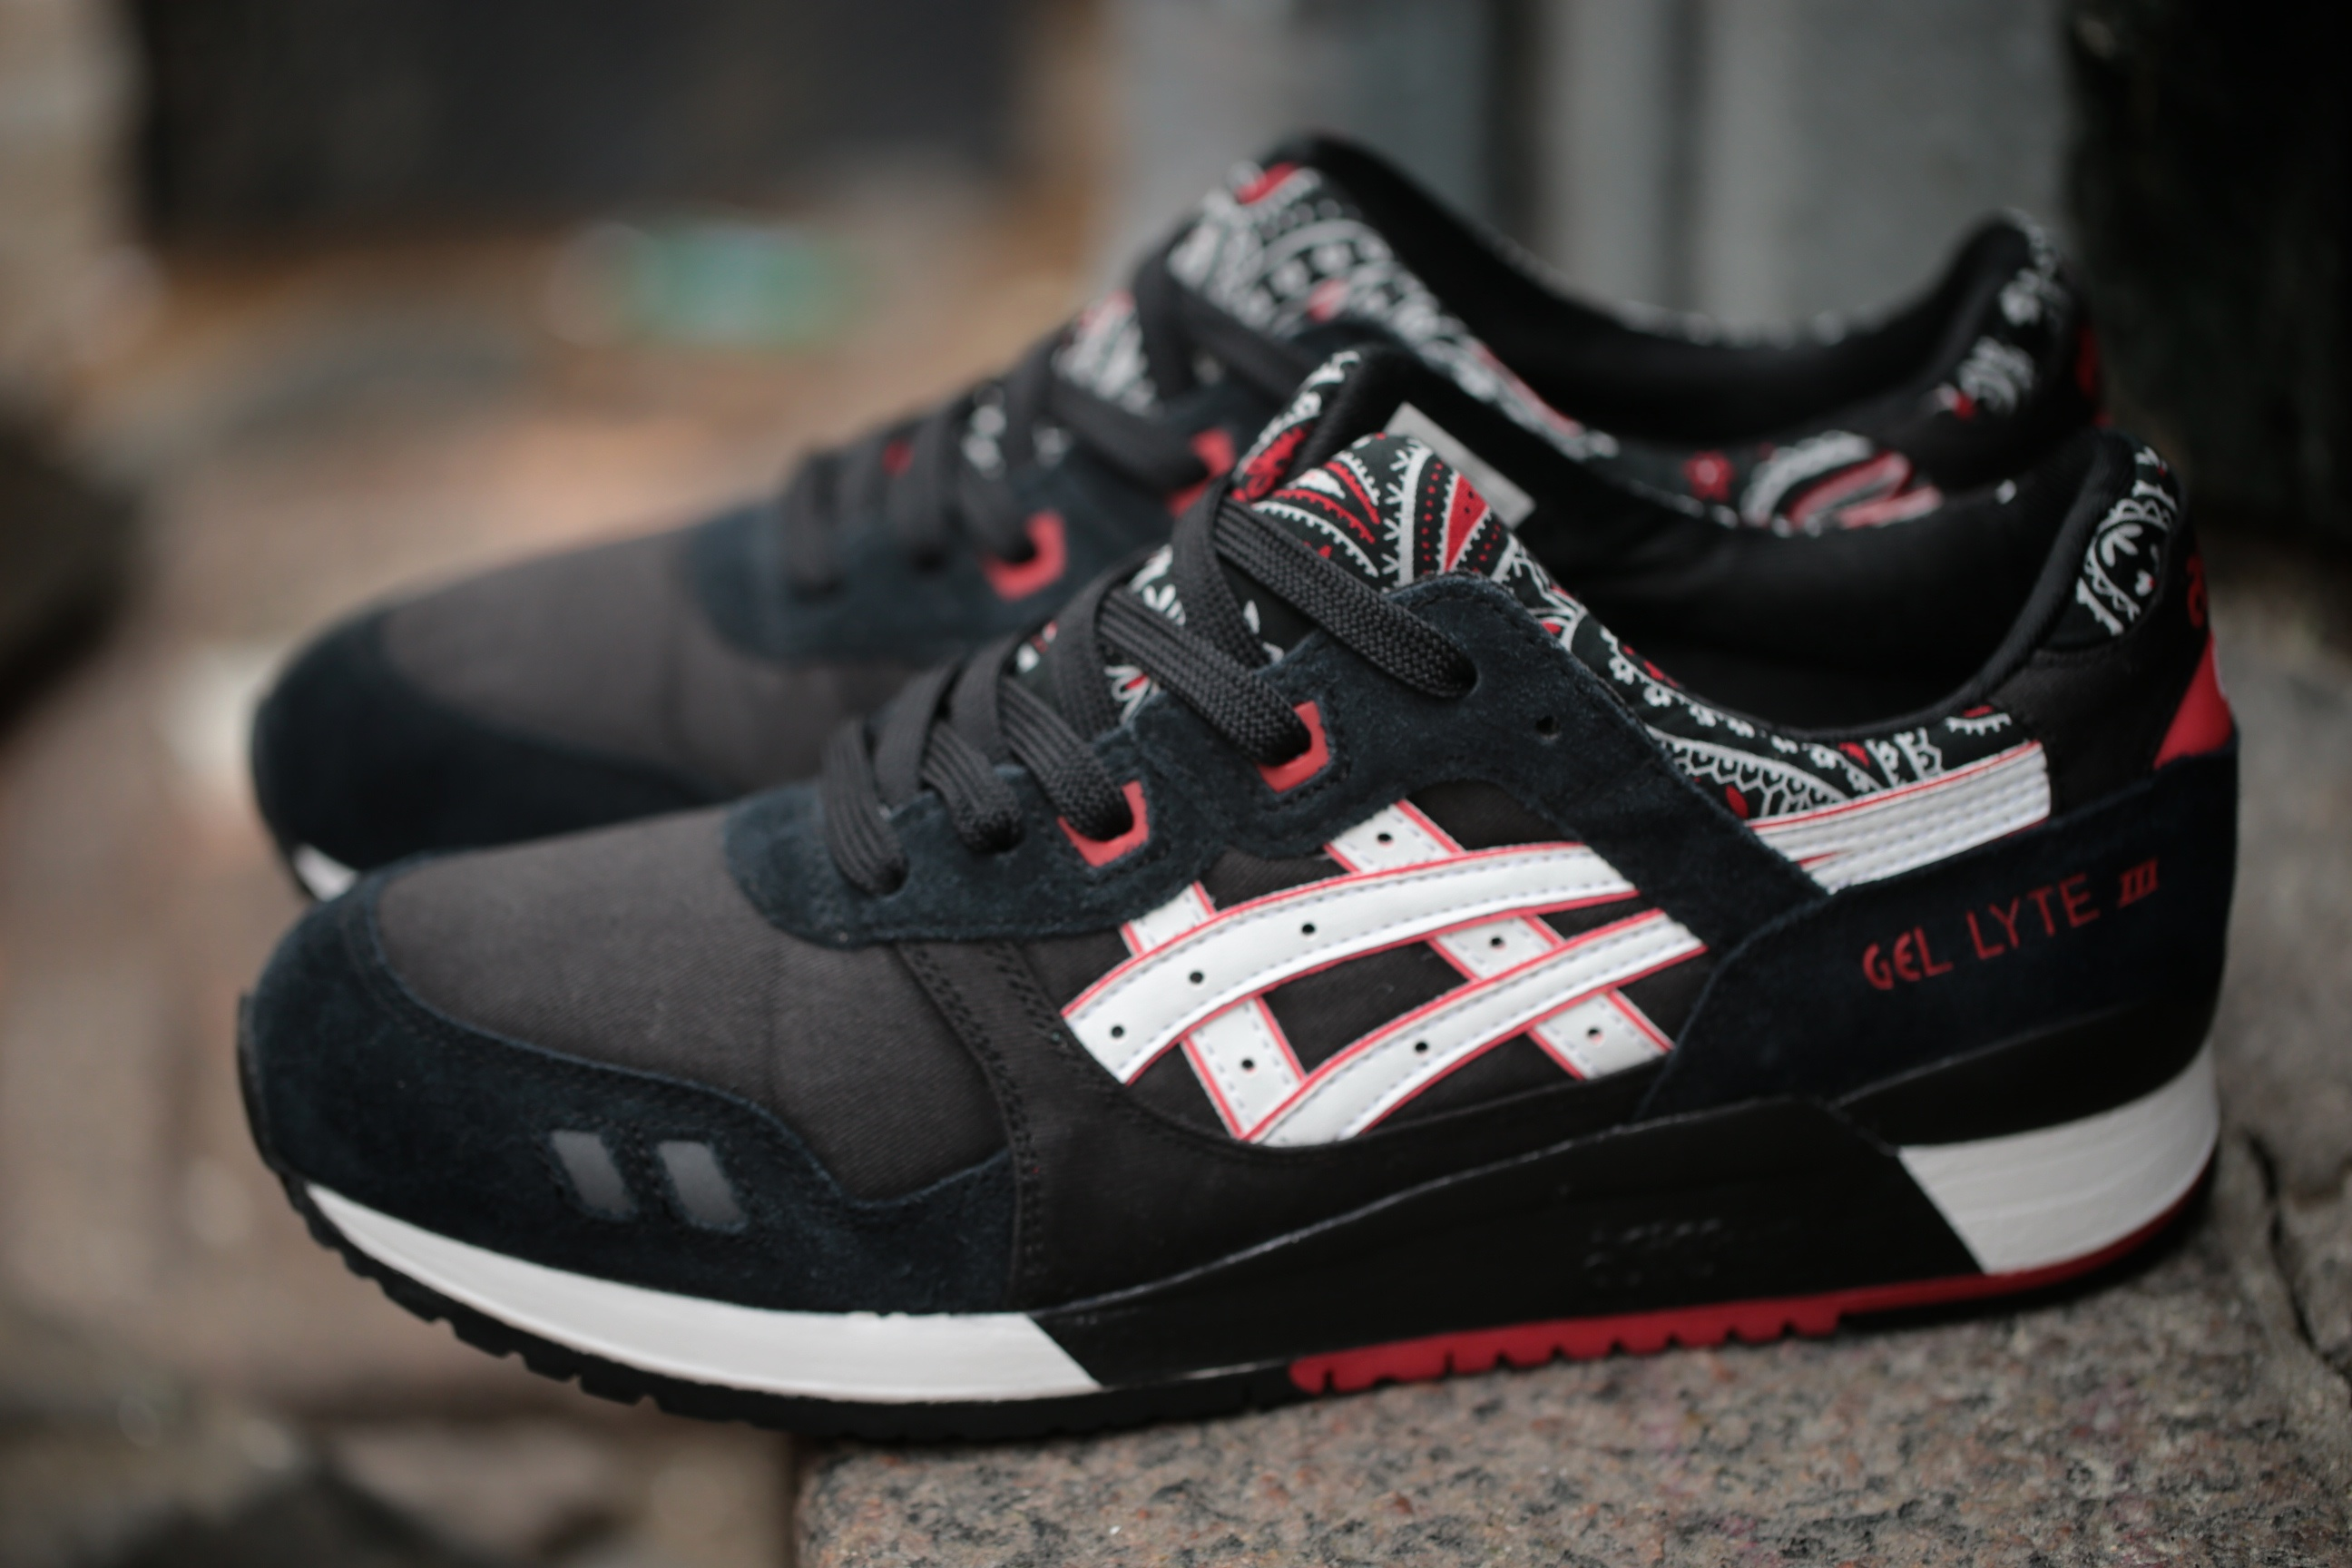 asics gel lyte 3 red black white